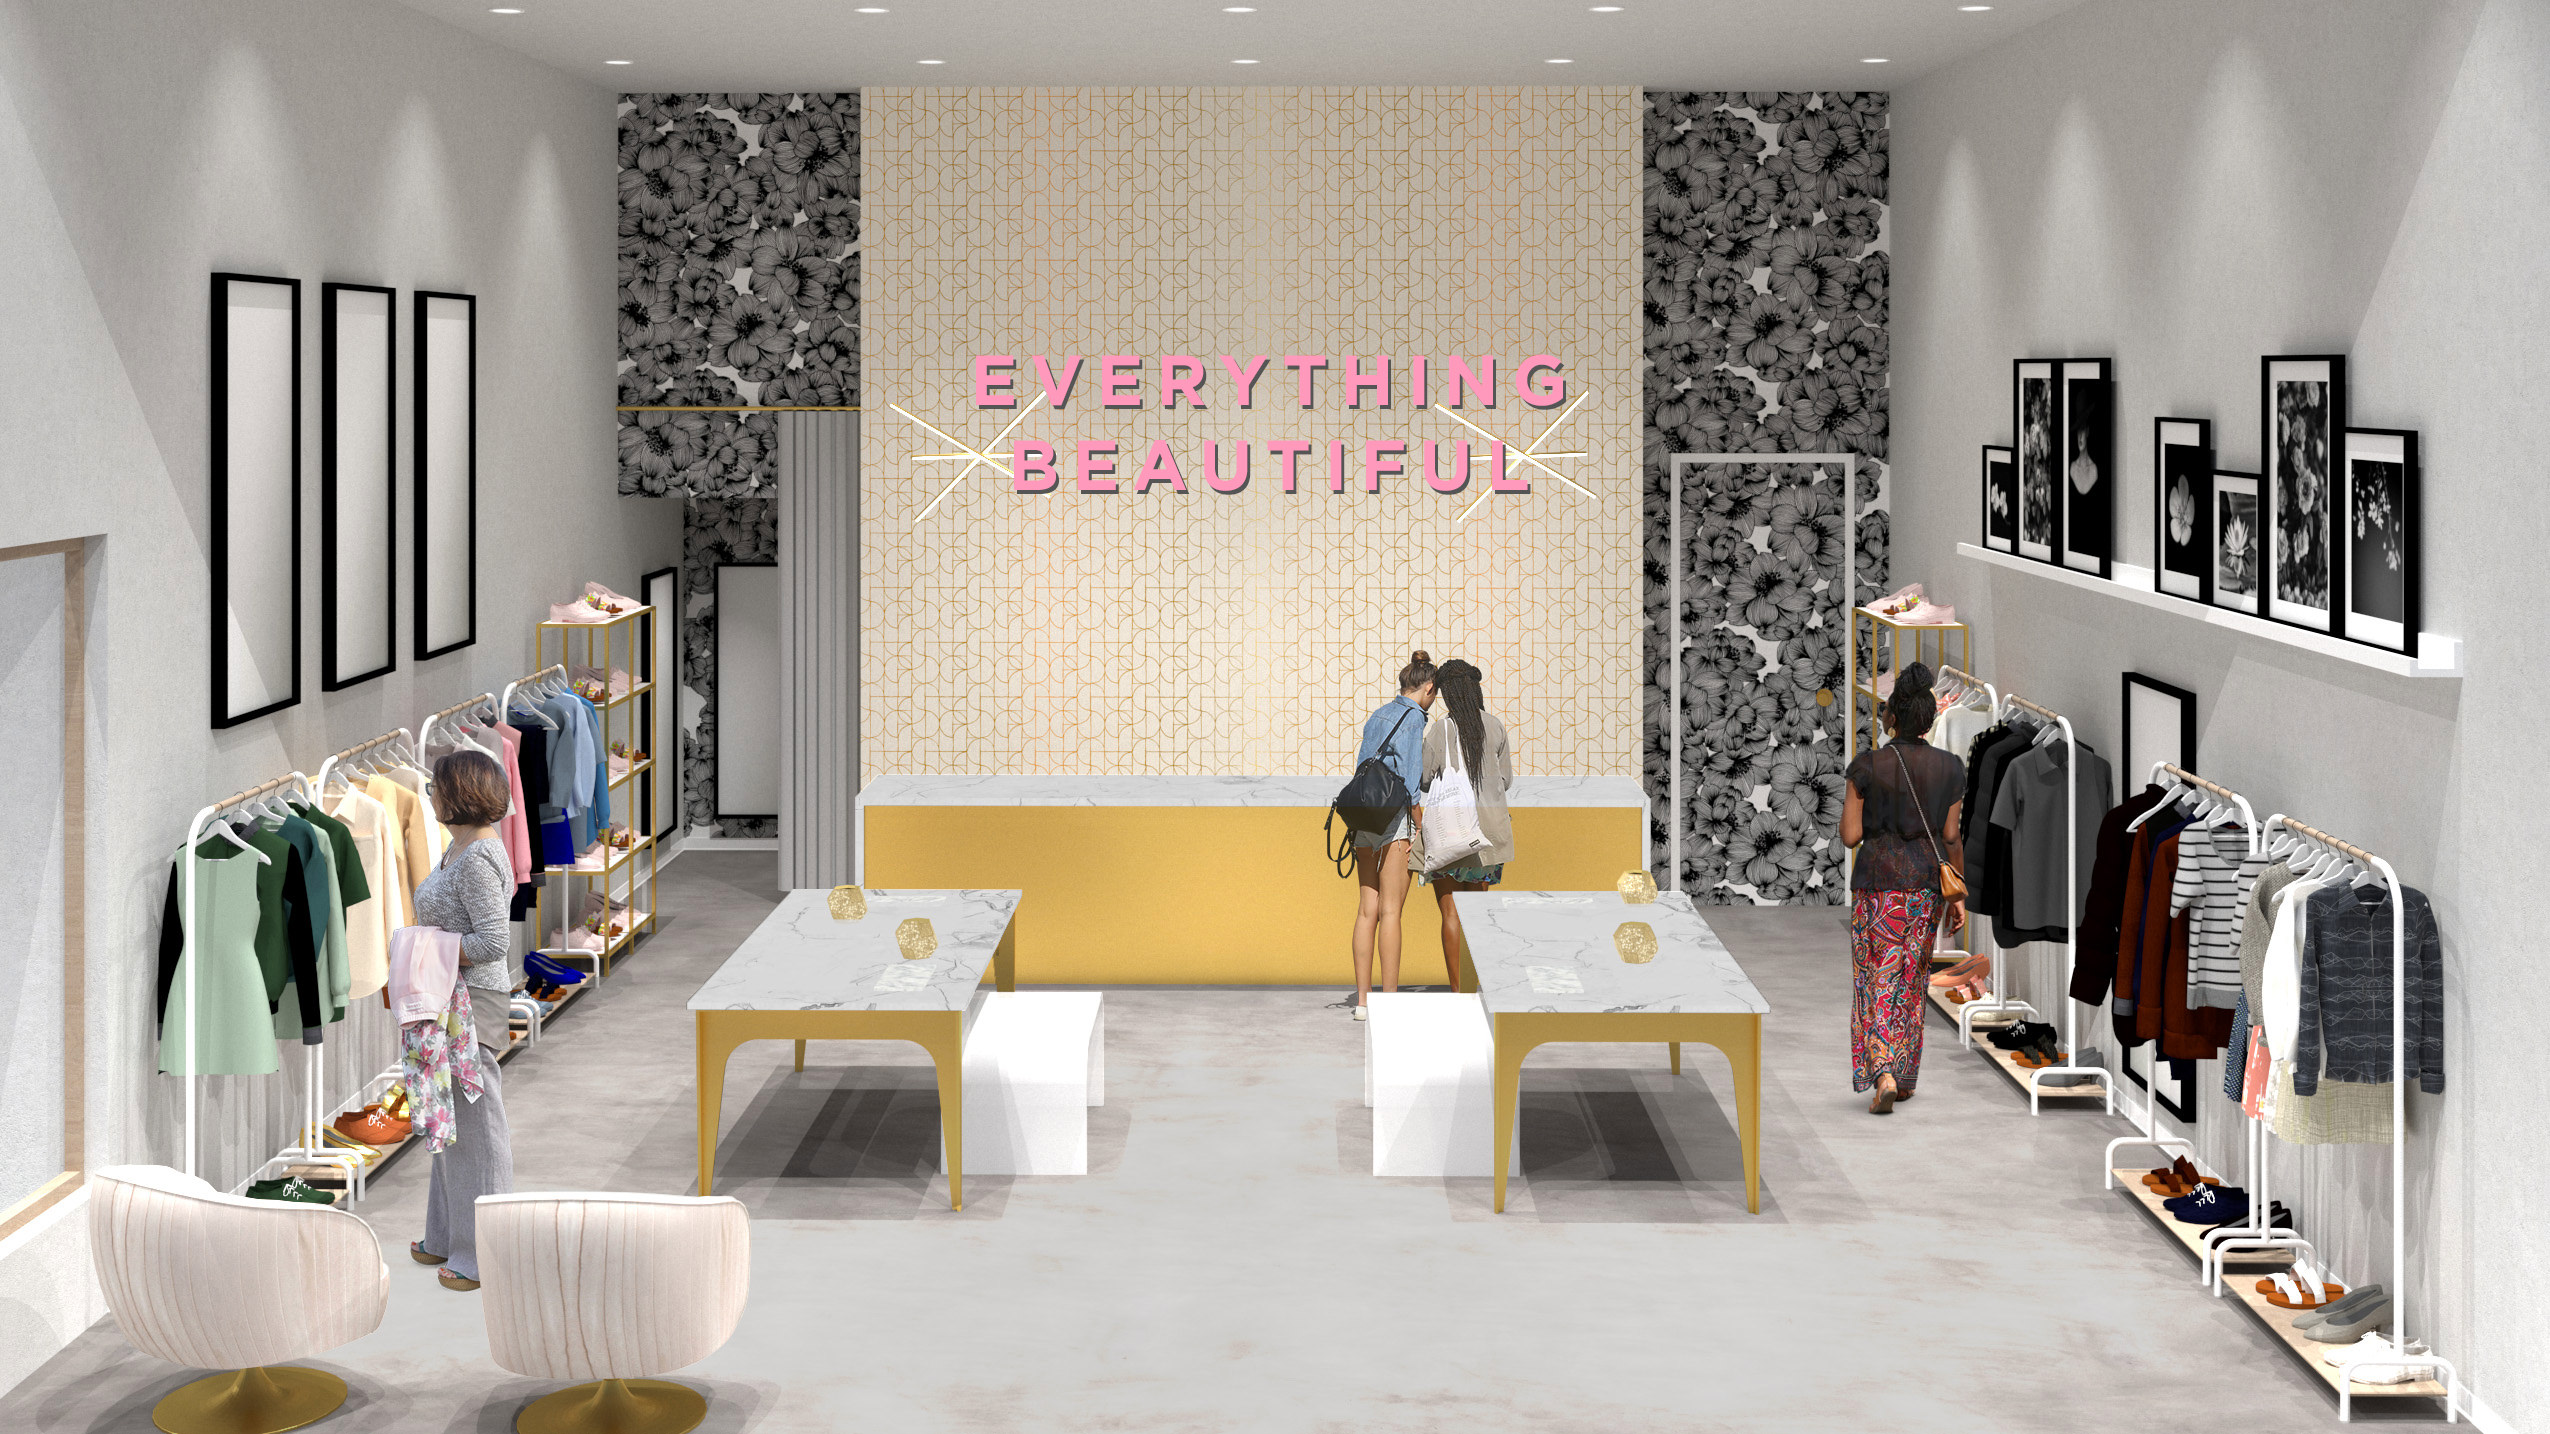 Rendering of the beauty bar with people